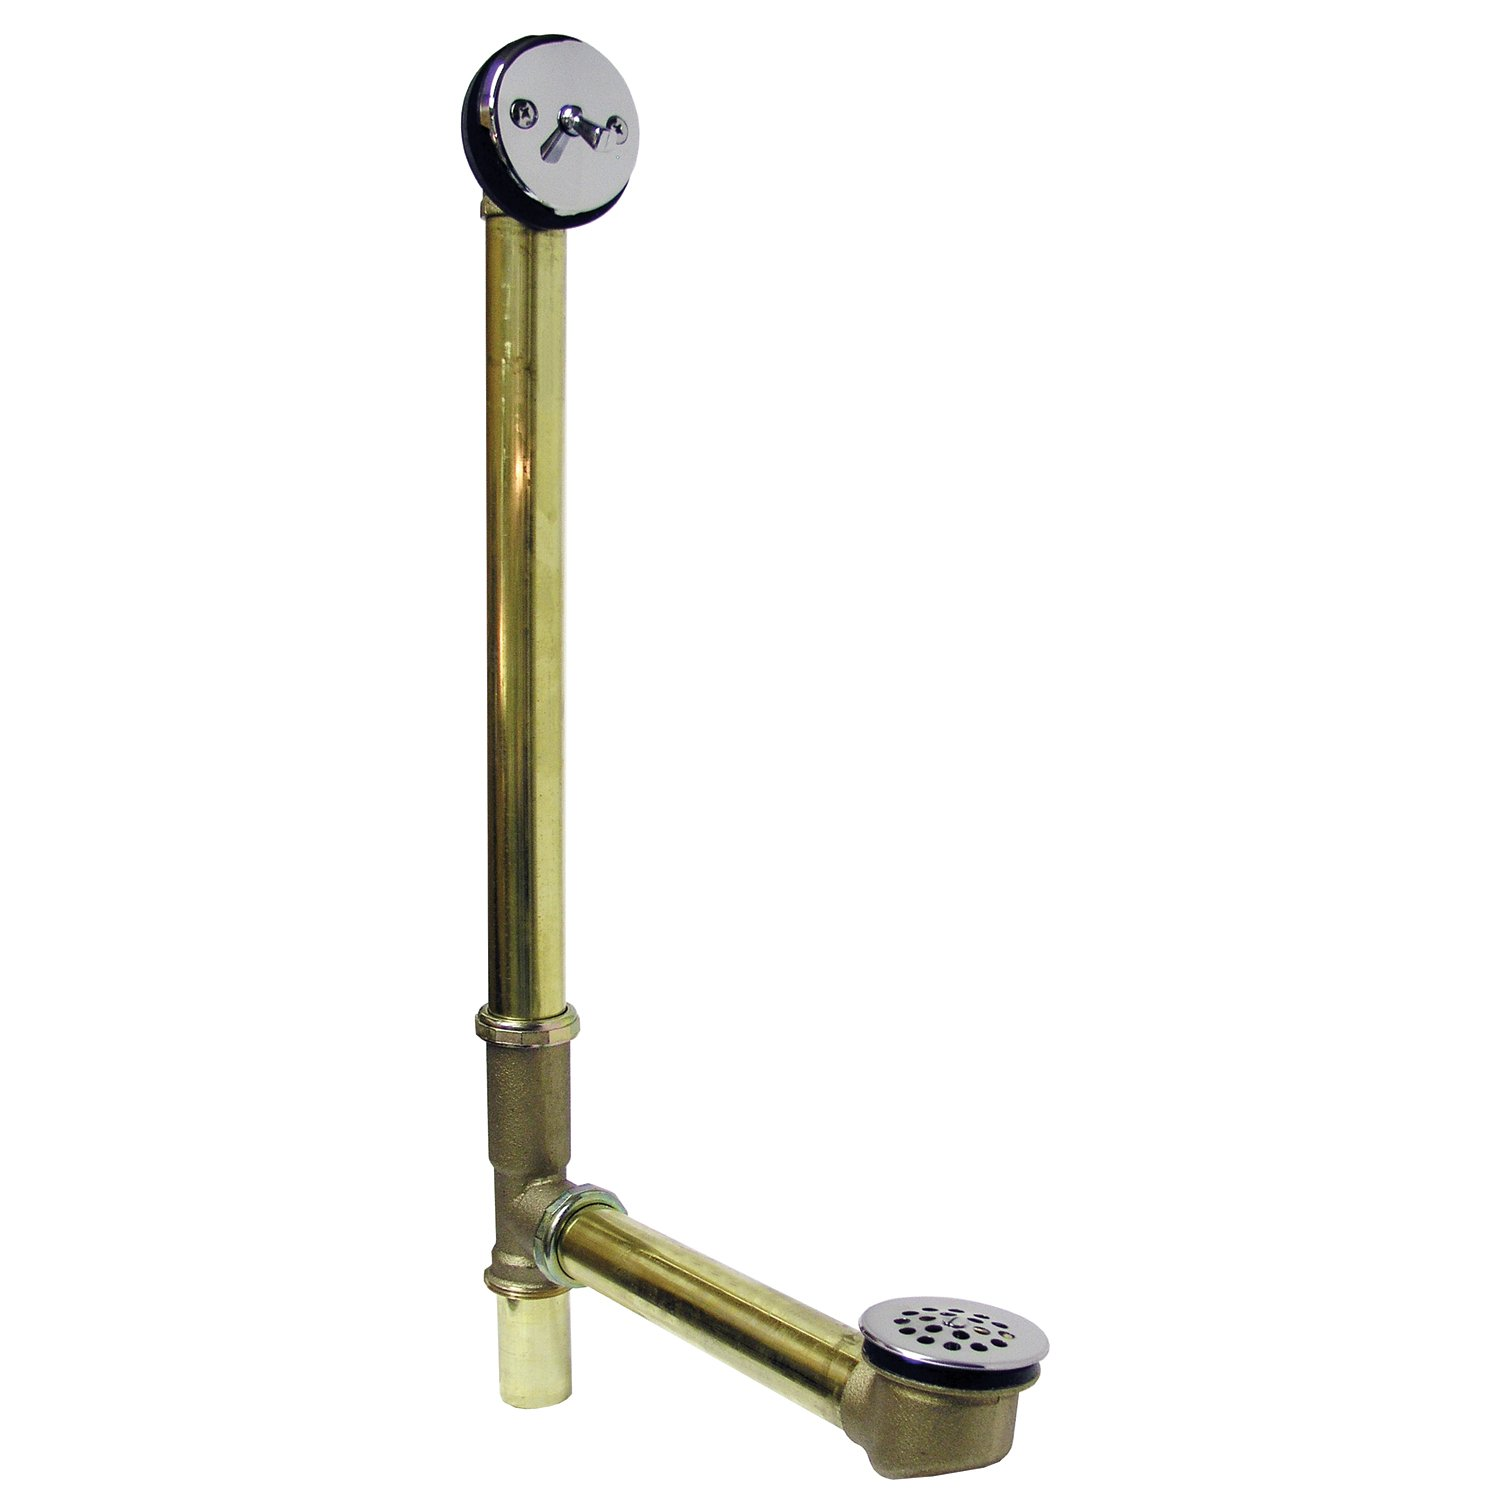 Watts 98CP Trip Lever 18-Inch 20-Gauge Brass Bath Drain, Chrome Trim by Watts